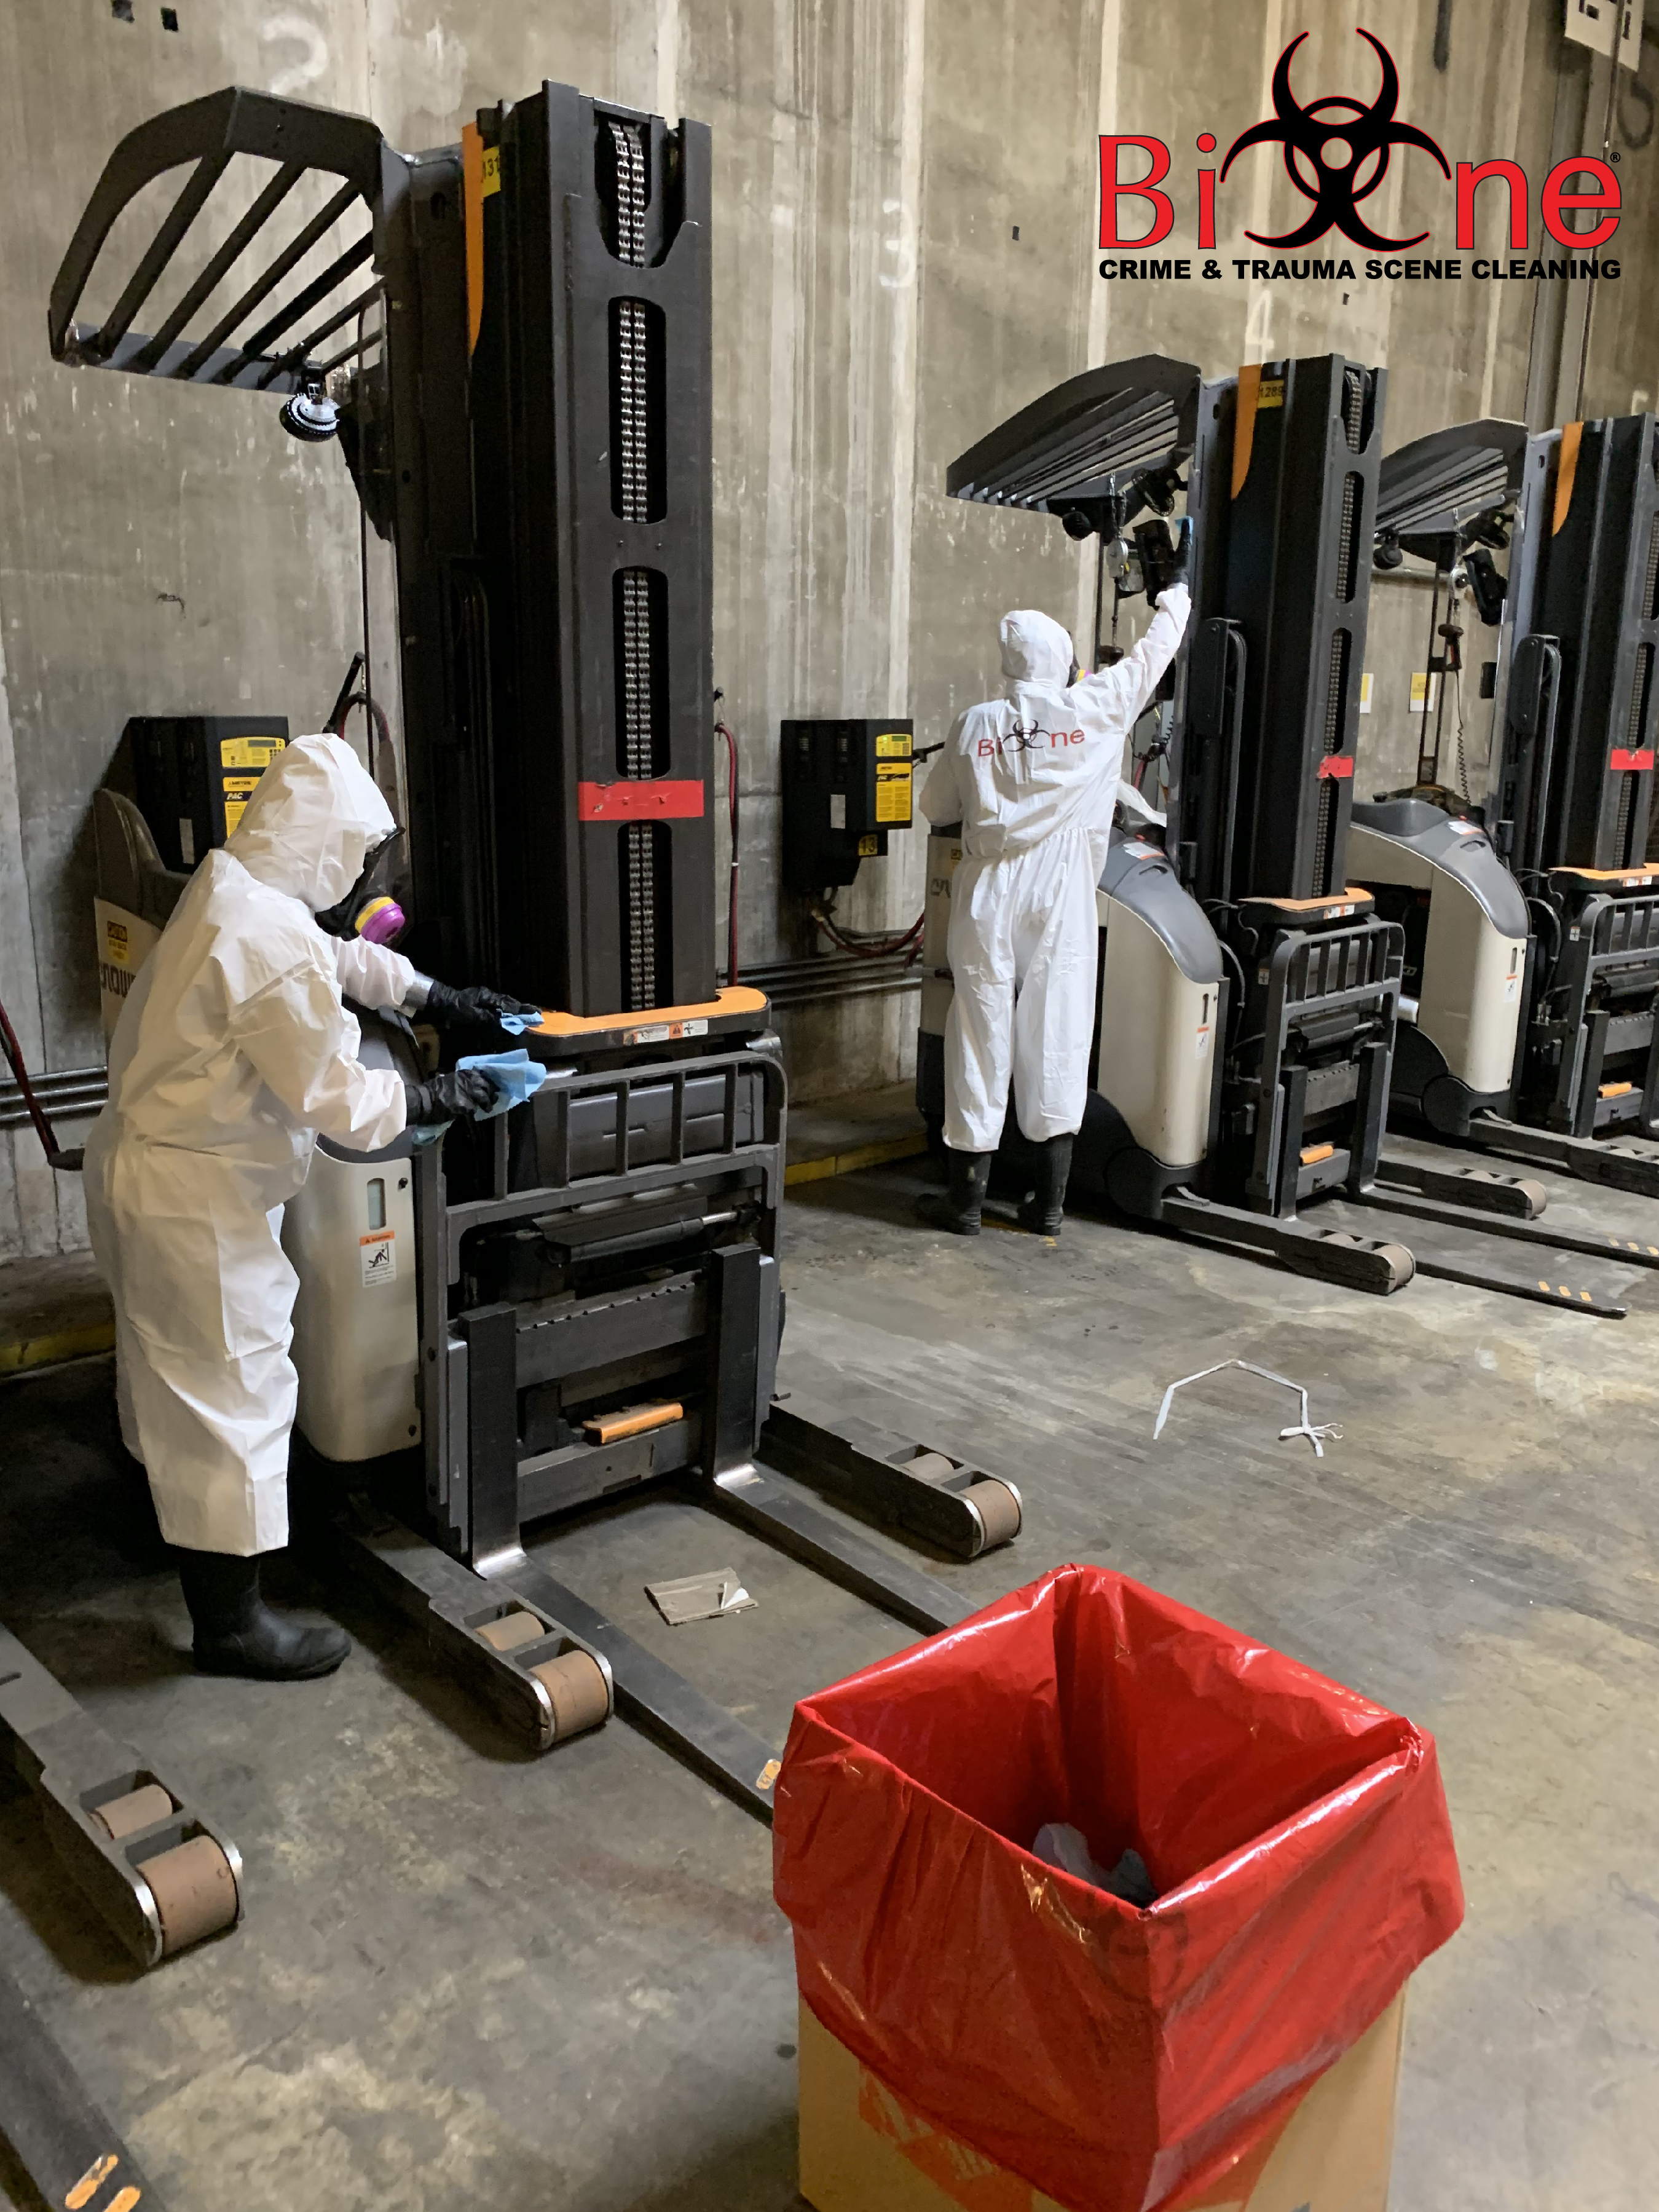 Bio-One specialists work to clean and sanitize commercial properties from biohazardous material.